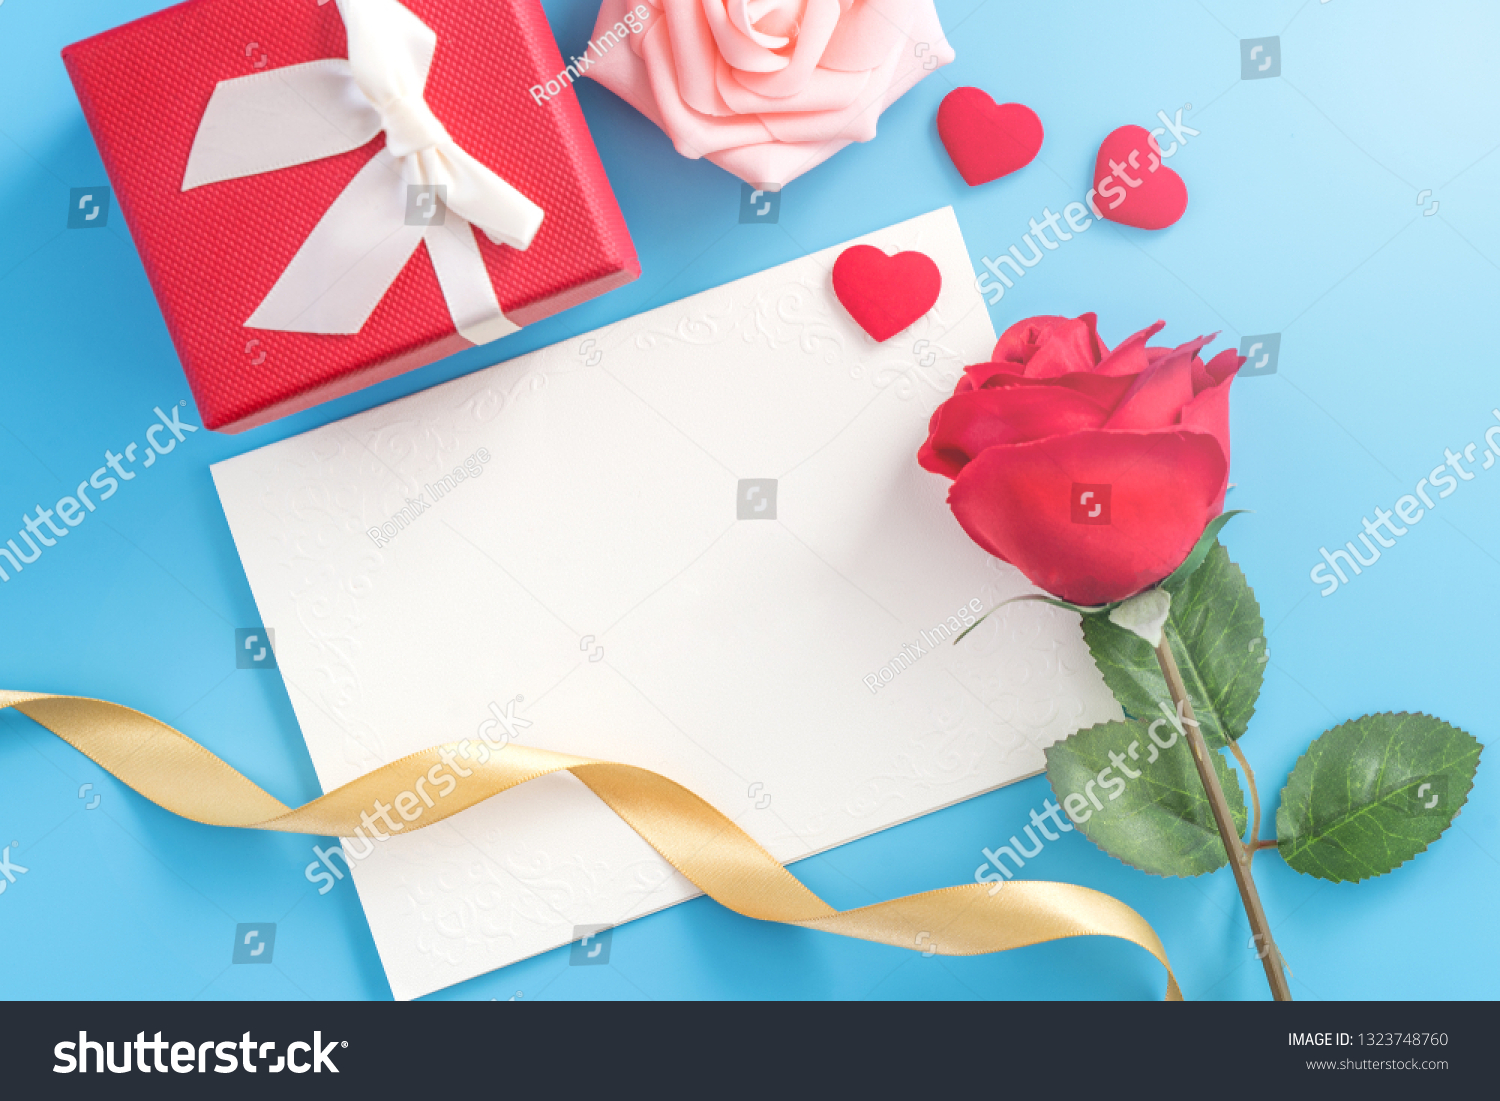 Beautiful Greeting Invitation Card Concept Mother Stock